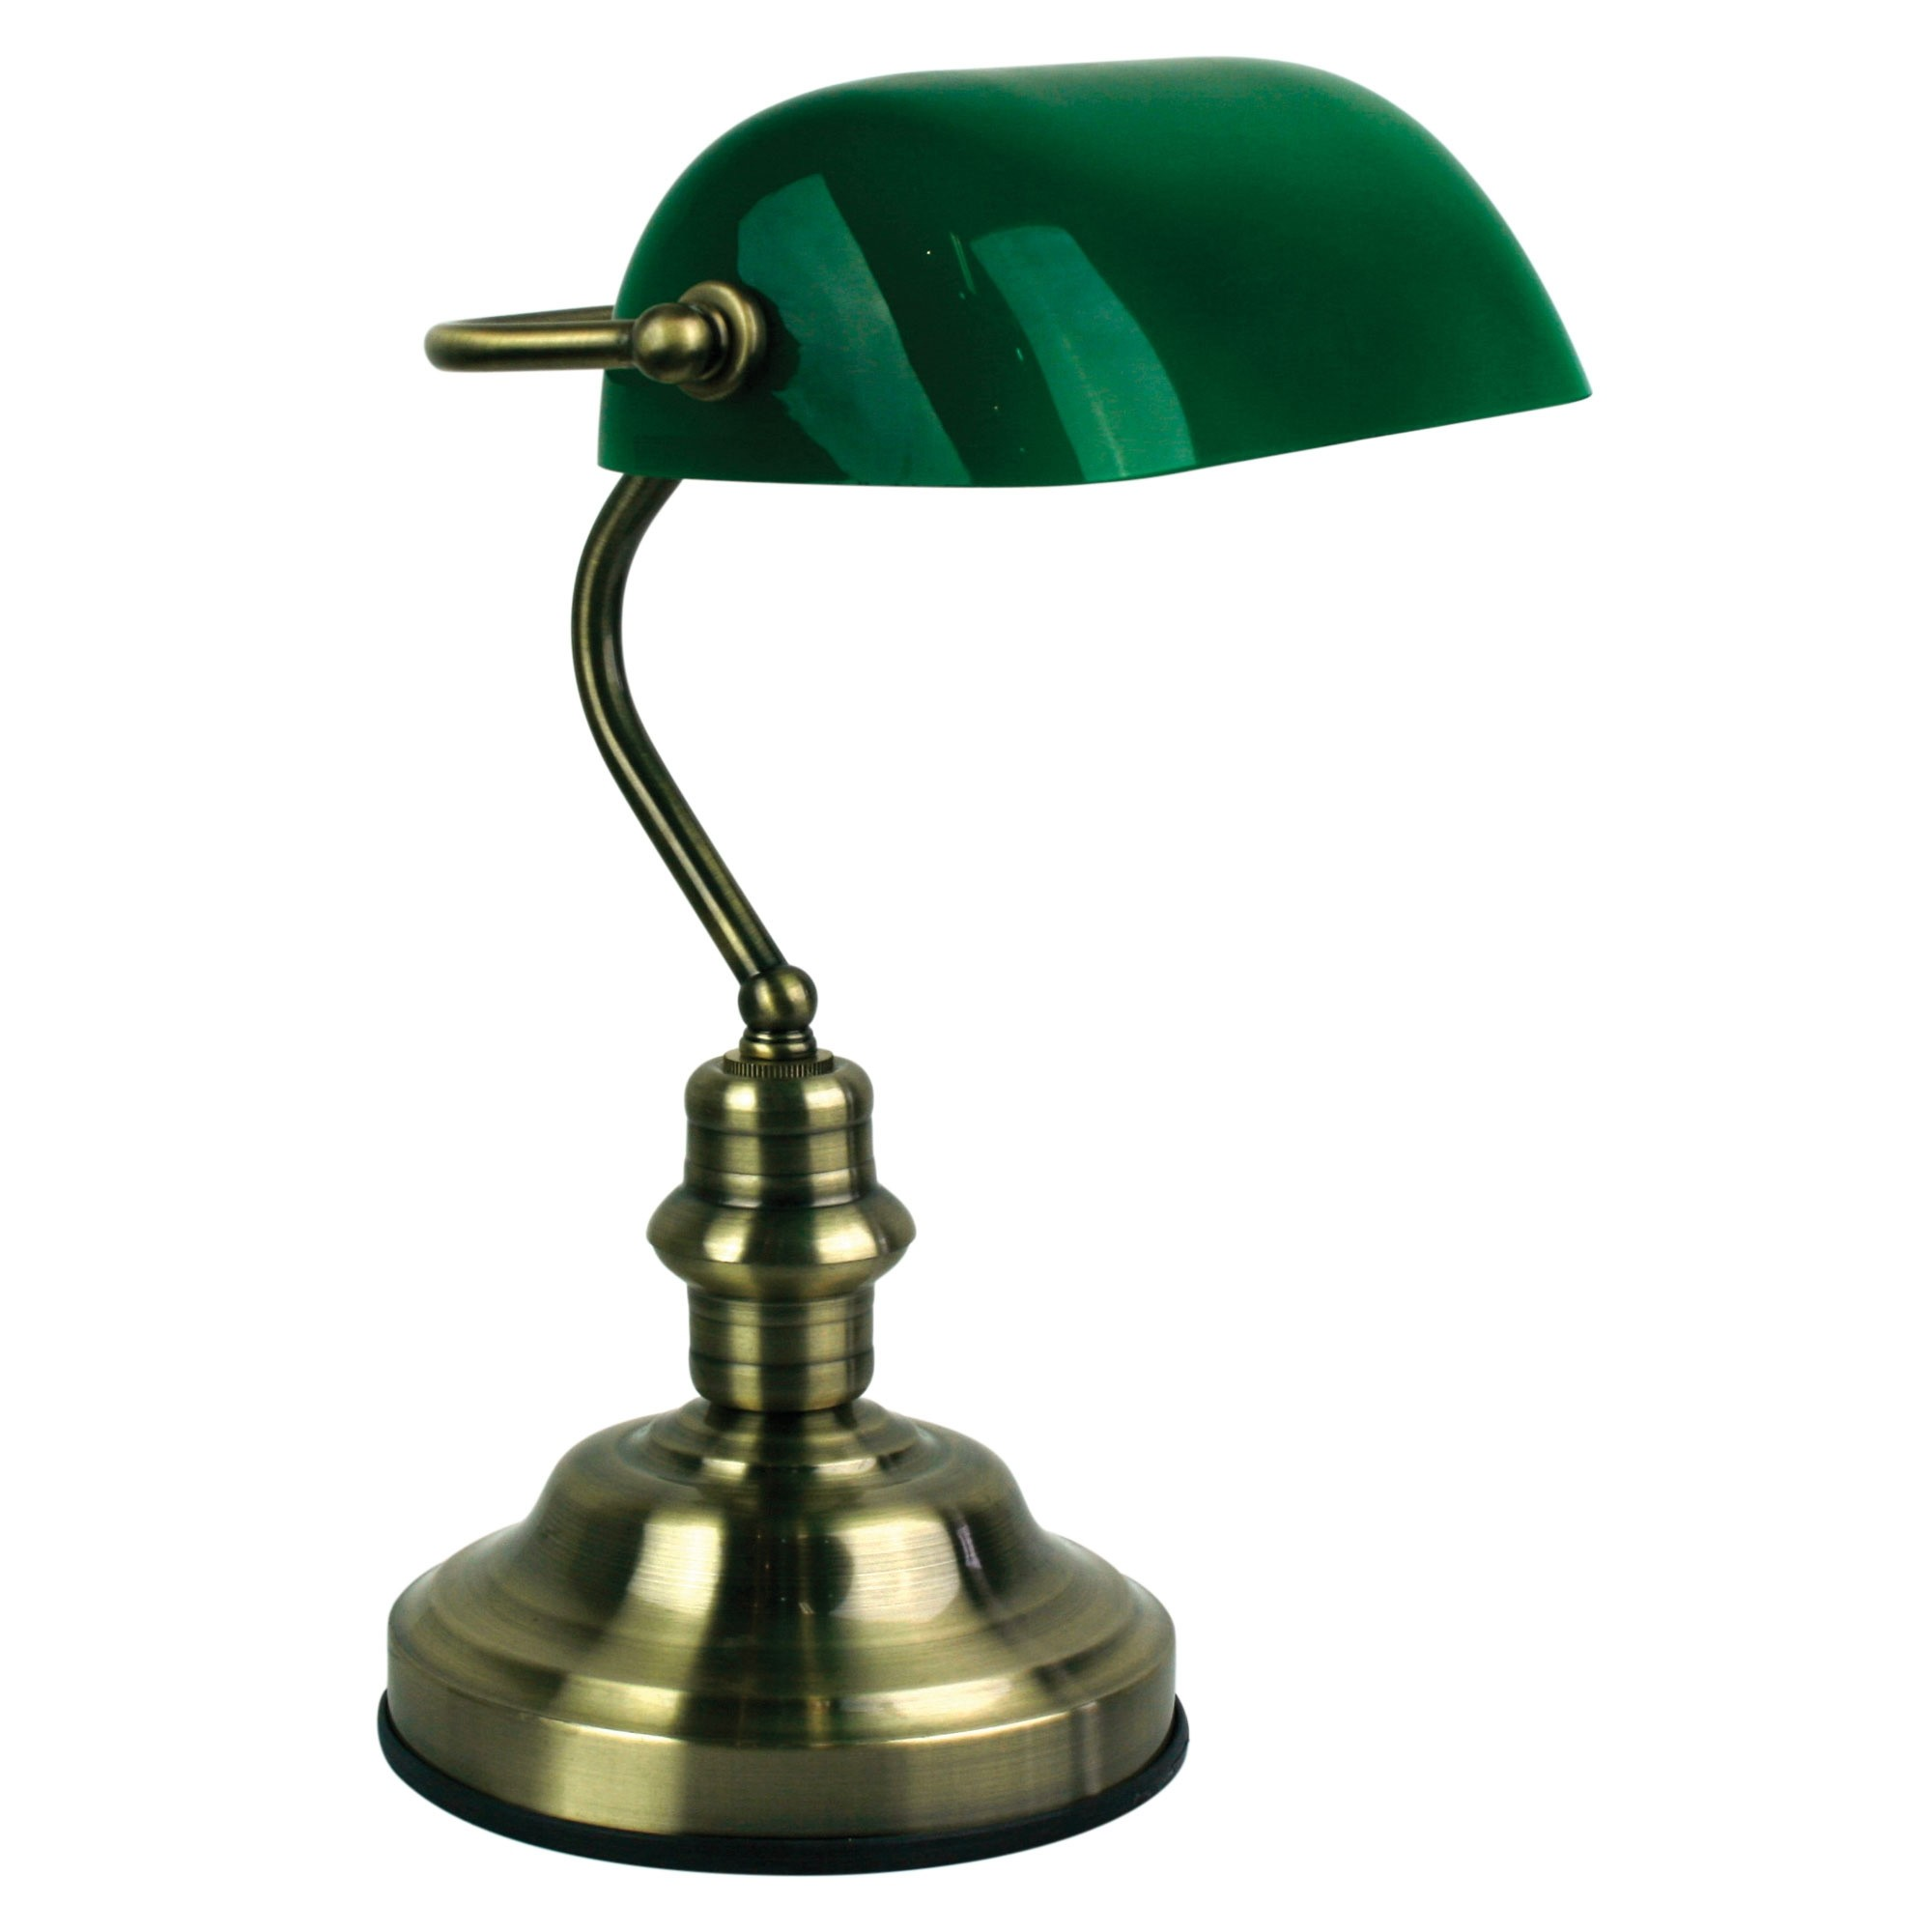 Bankers Metal & Glass Desk Lamp with Switch, Antique Brass